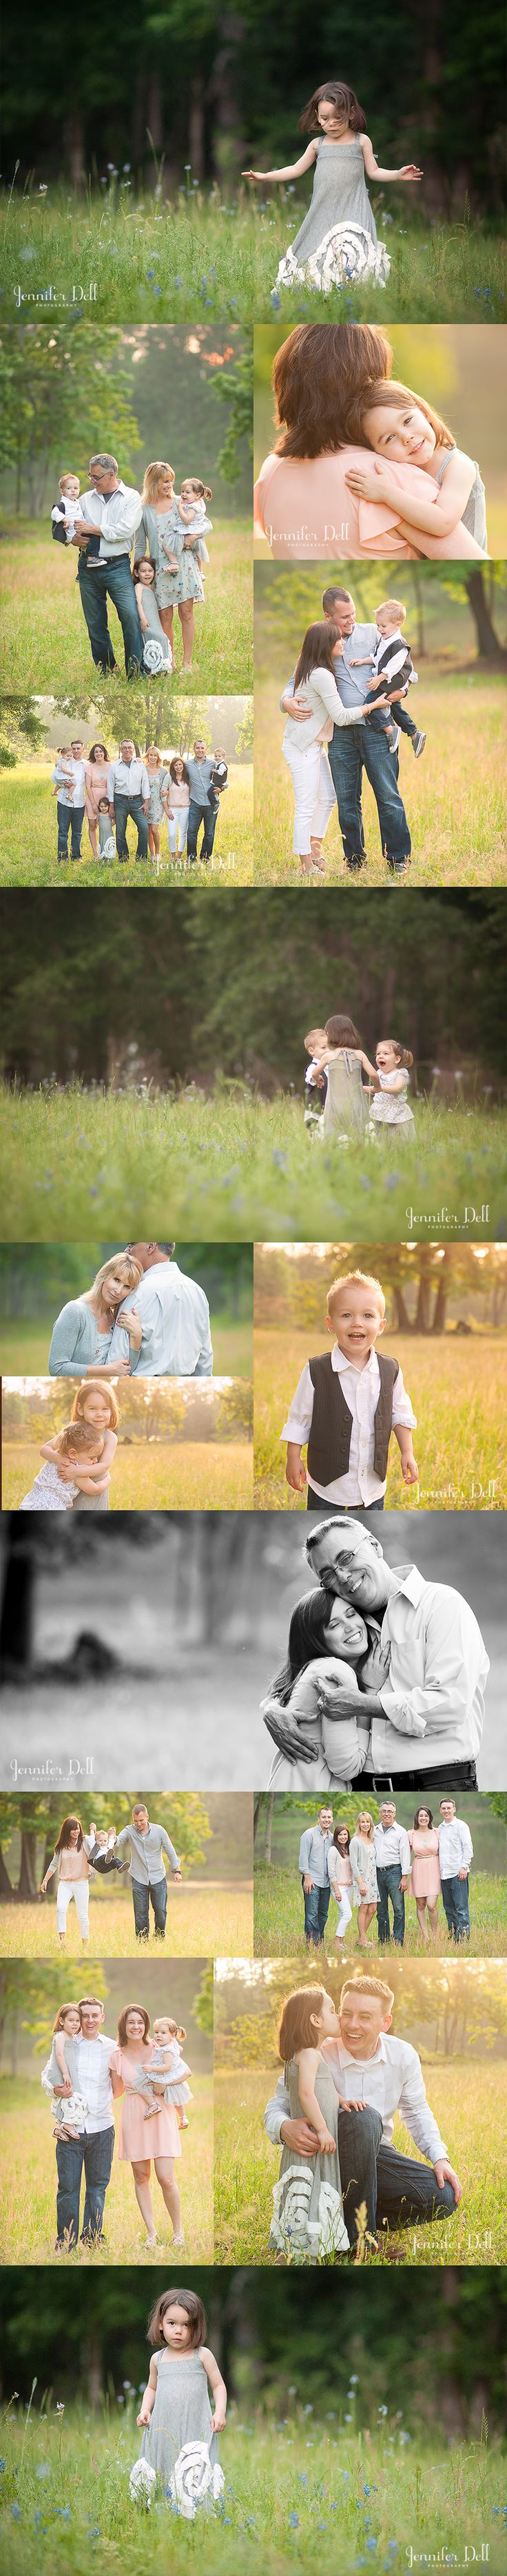 Happiness… Houston Family Photographer » Houston & Tomball Photographer – Child, Baby & Family Photography – 832-377-5893  © www.jenniferdellphotography.com